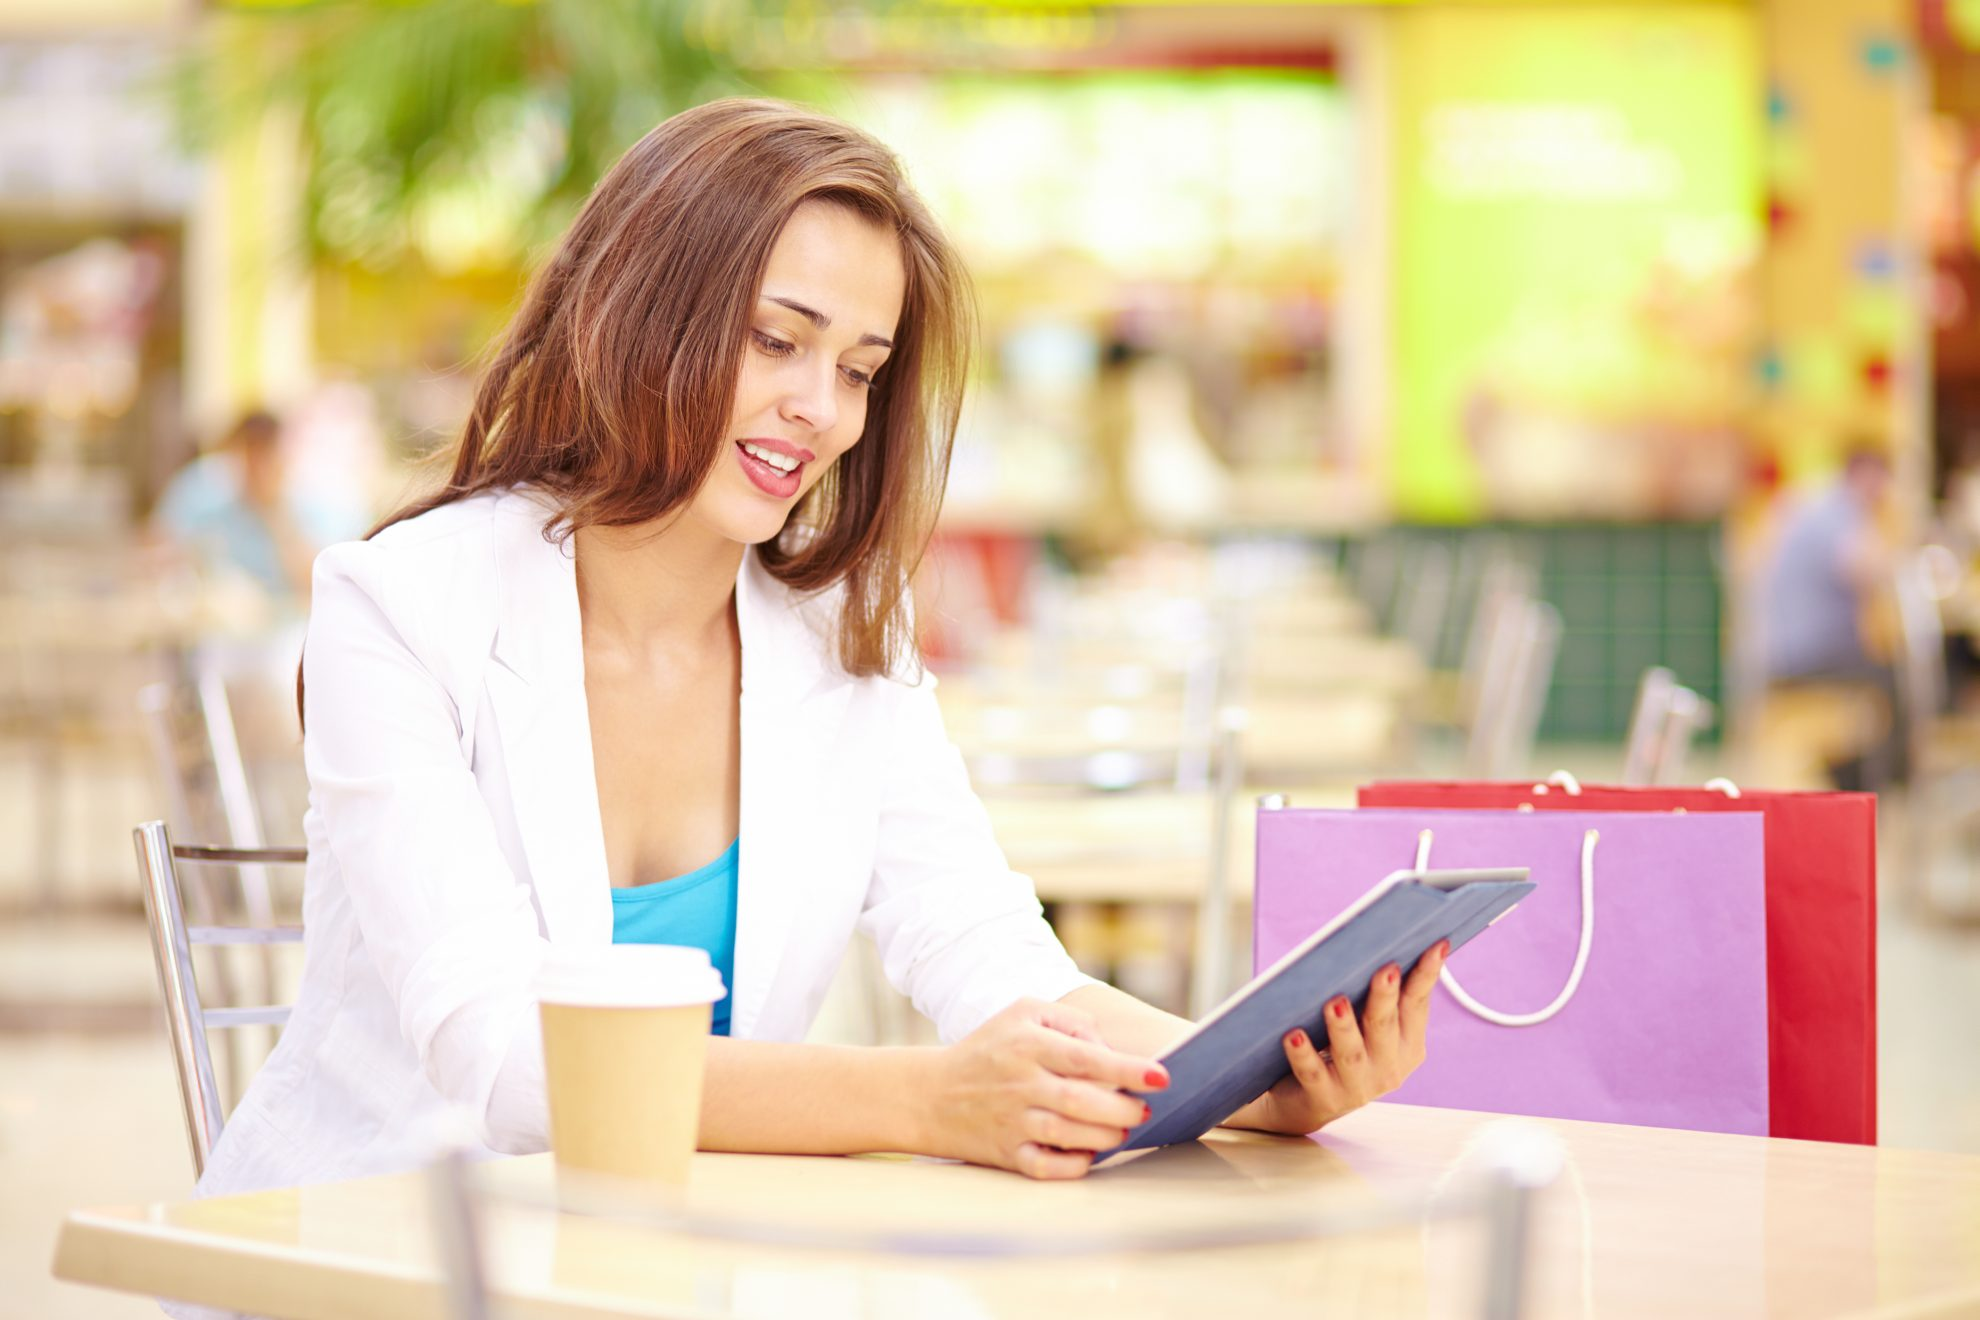 Woman shopping and looking for promotional code on tablet